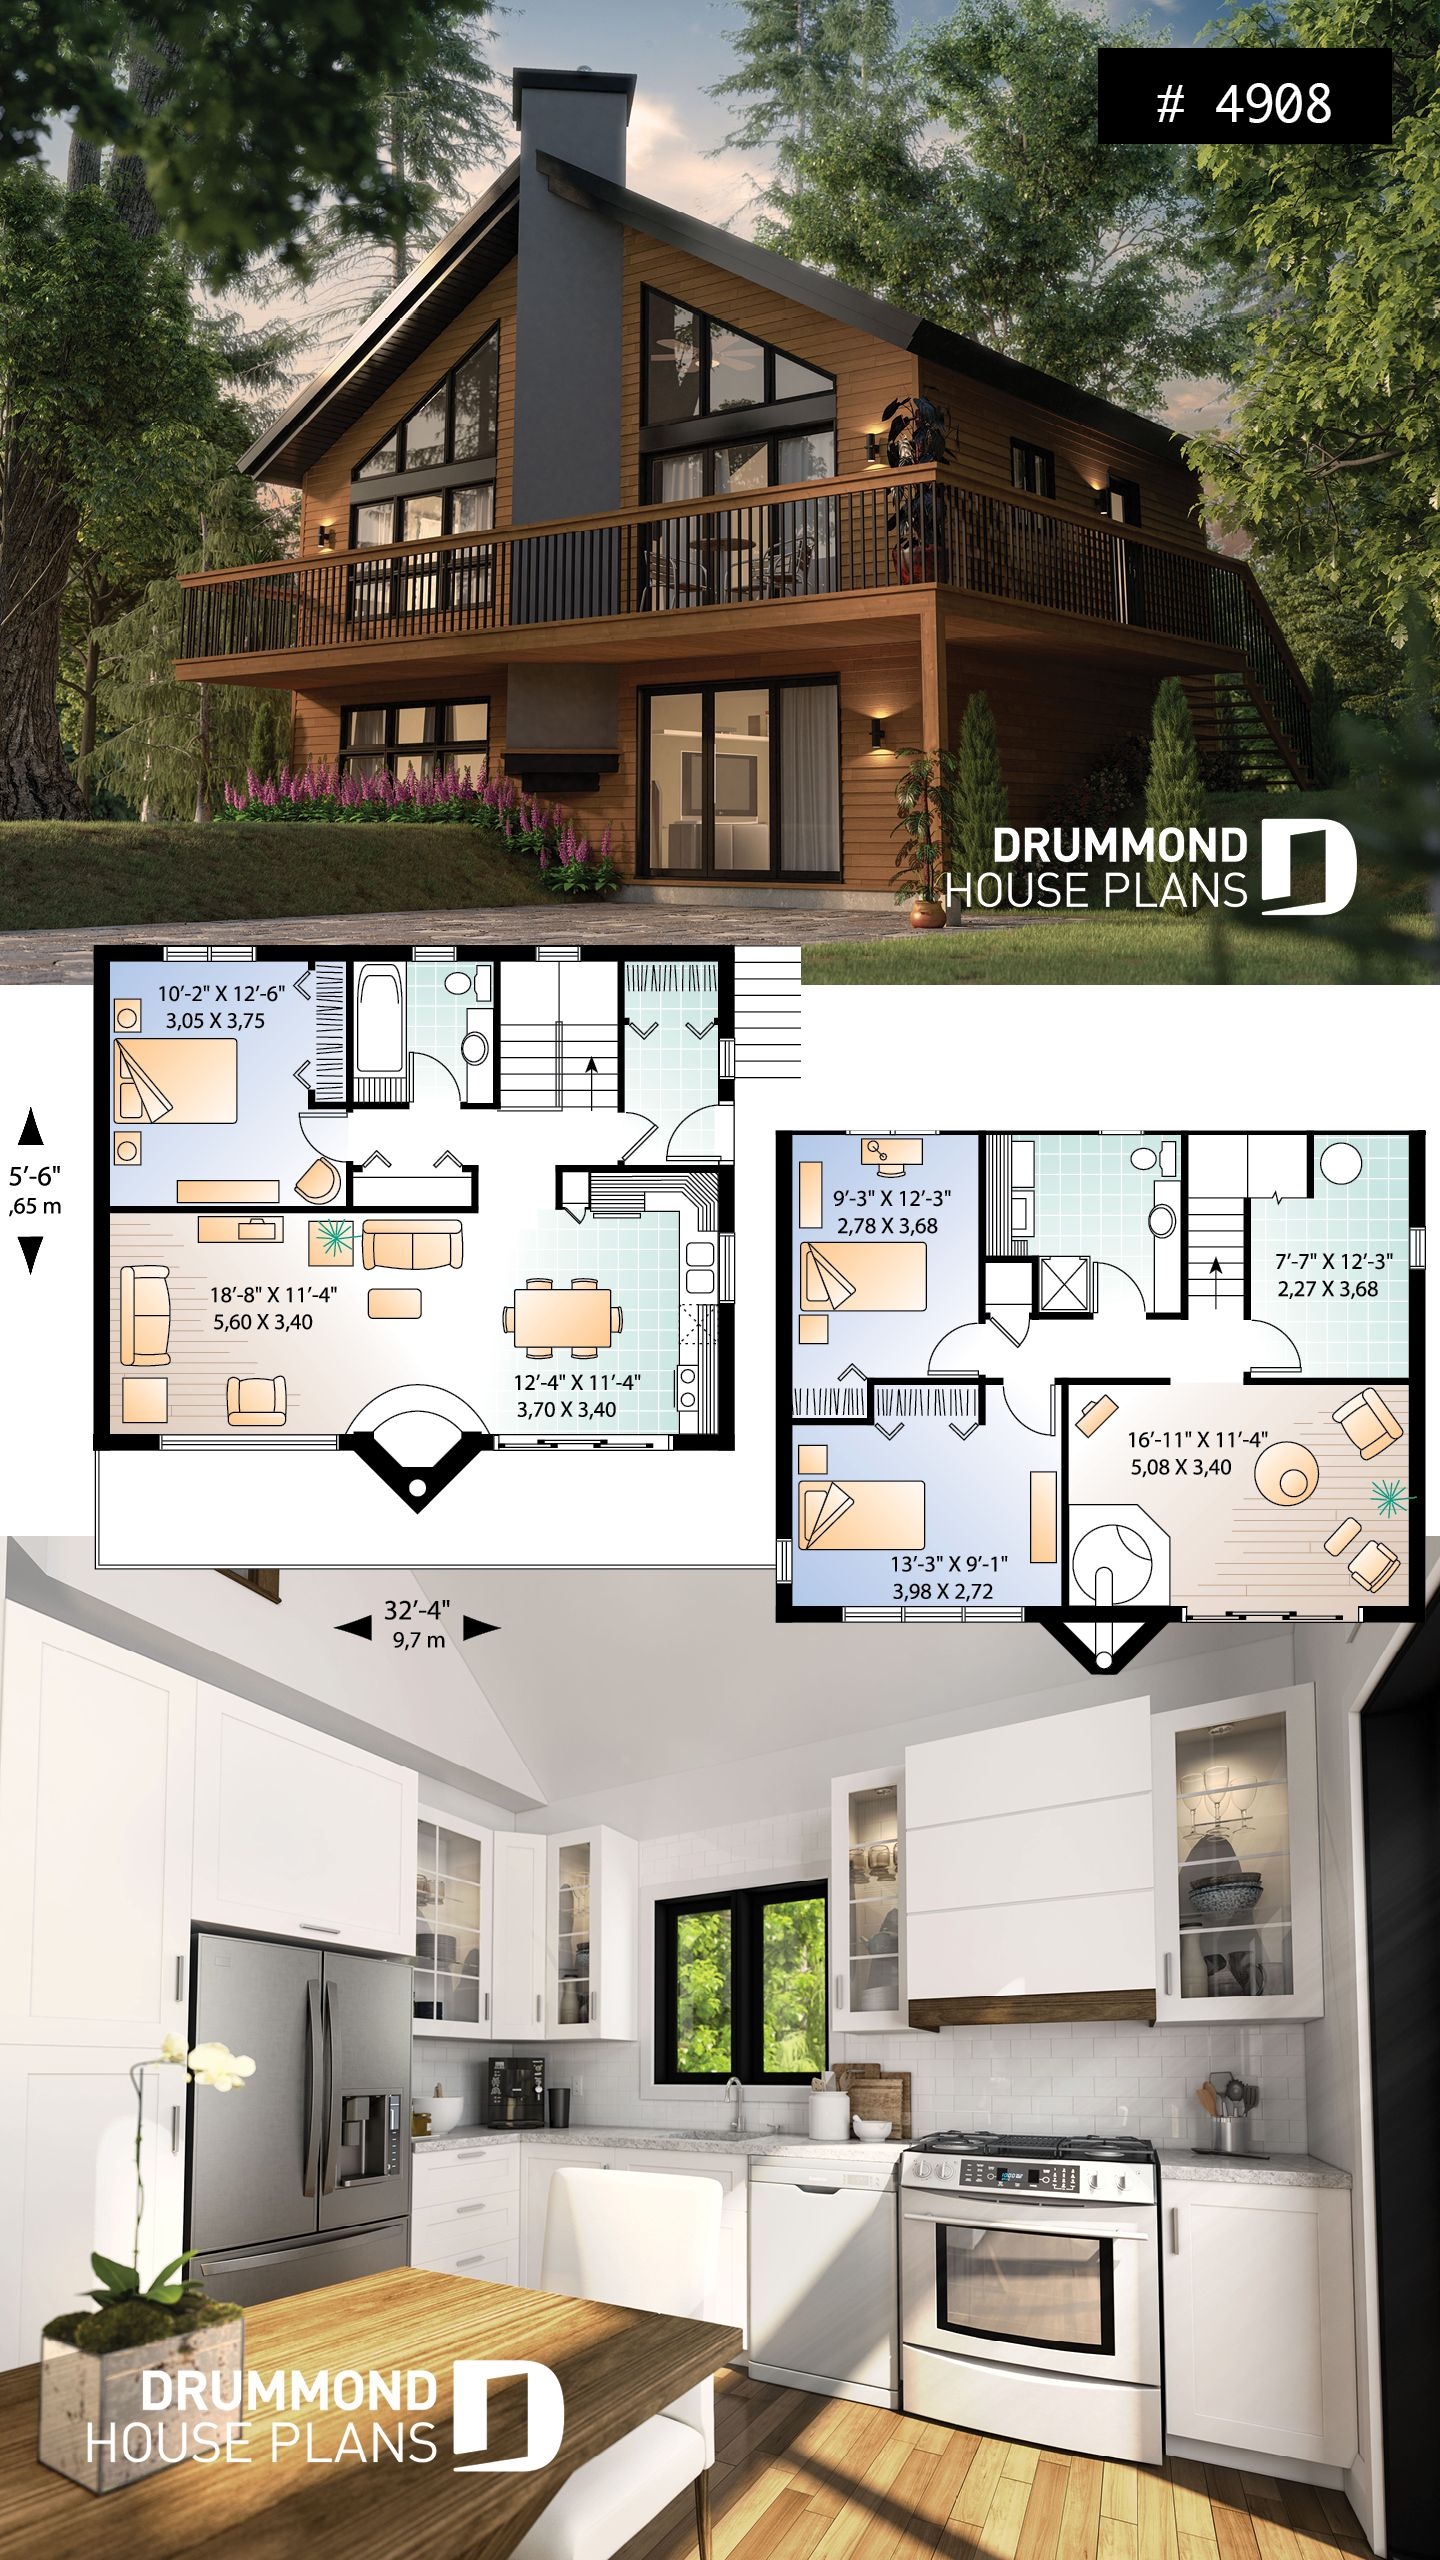 House Plan The Skybridge 2 No 4908 In 2020 Lake House Plans Drummond House Plans Cottage Plan